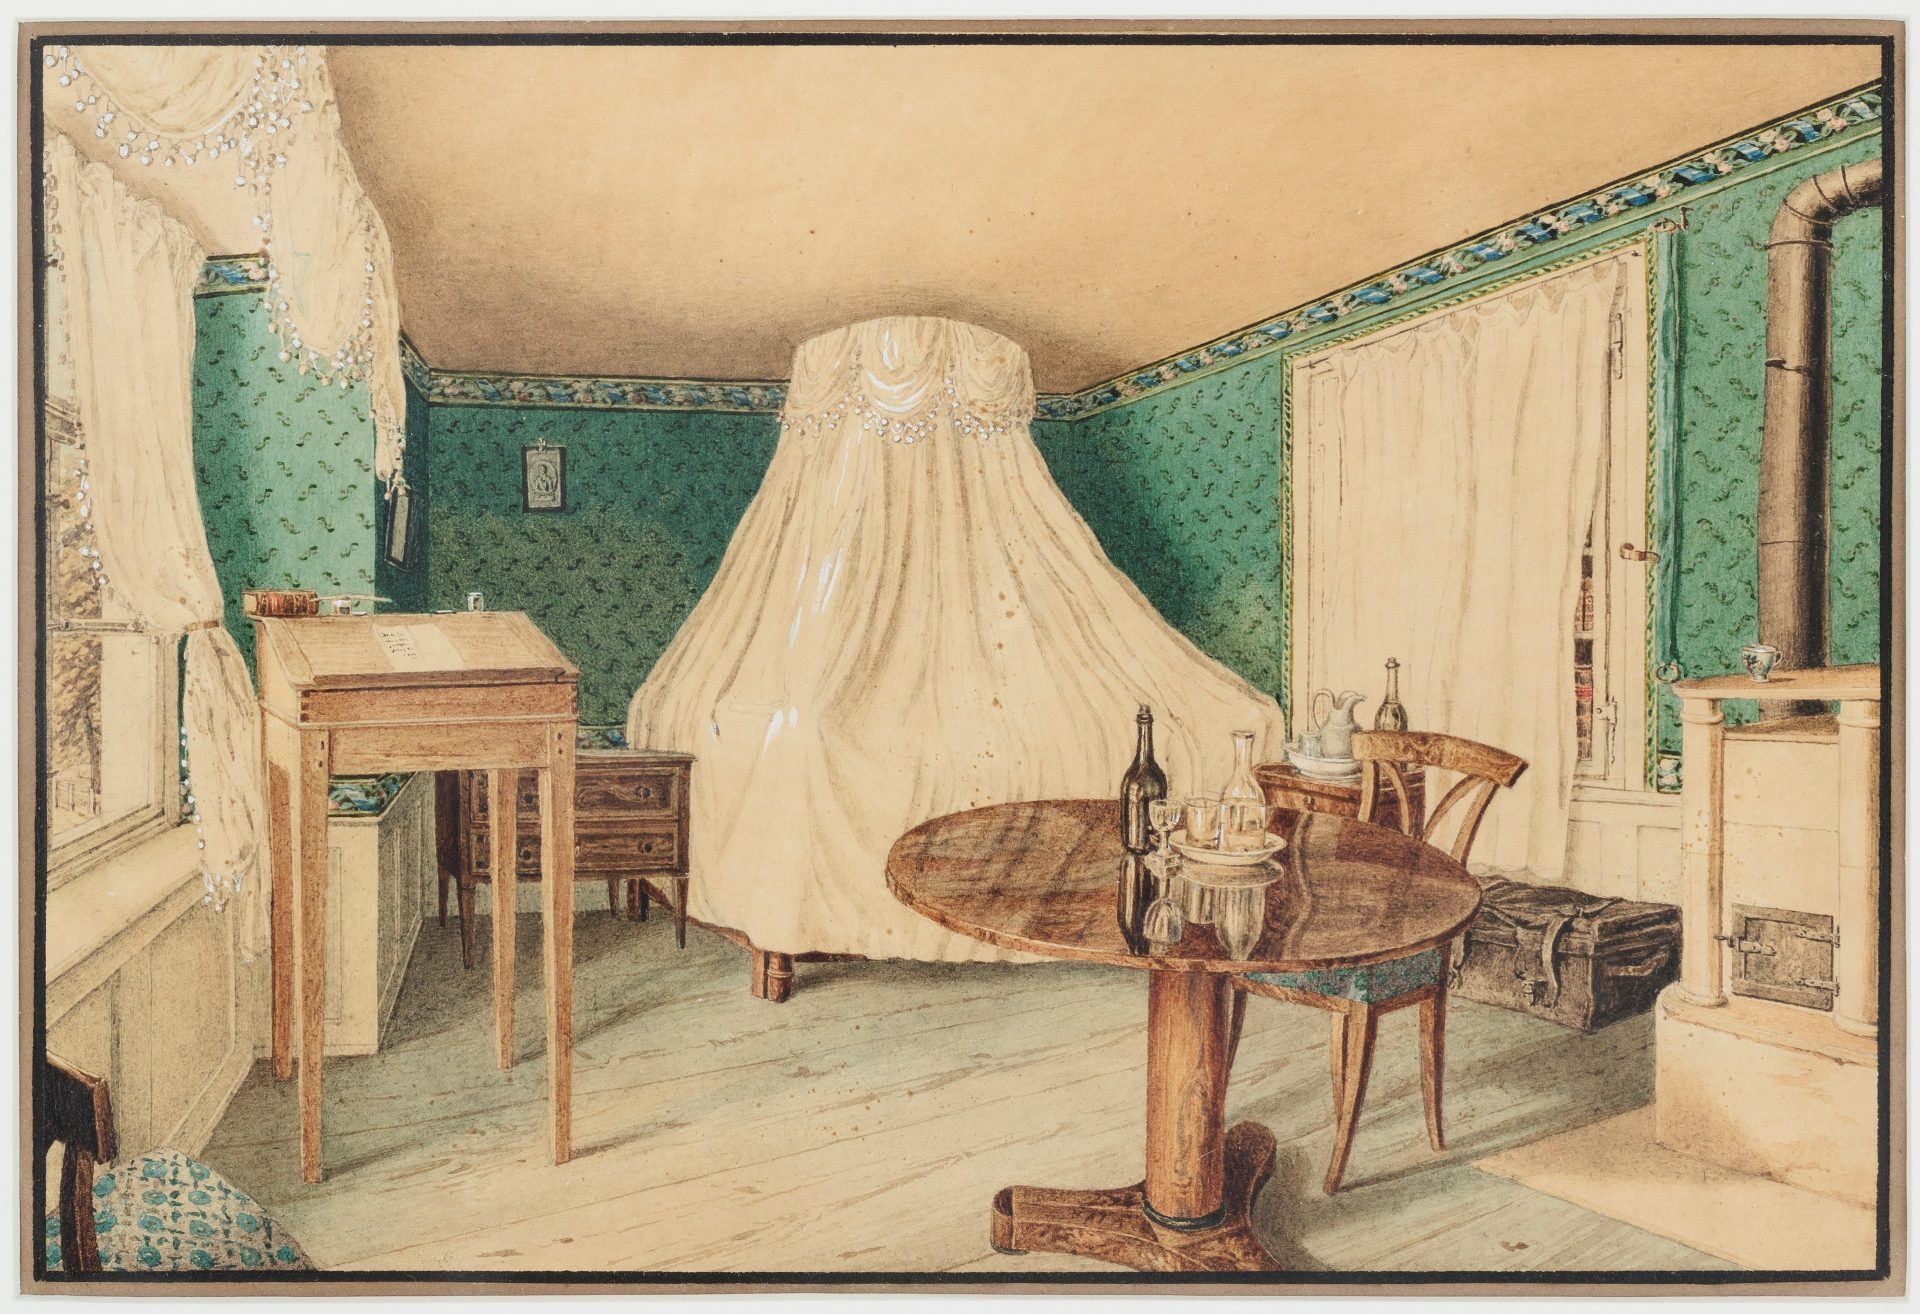 Watercolour of a small room with green wallpaper.